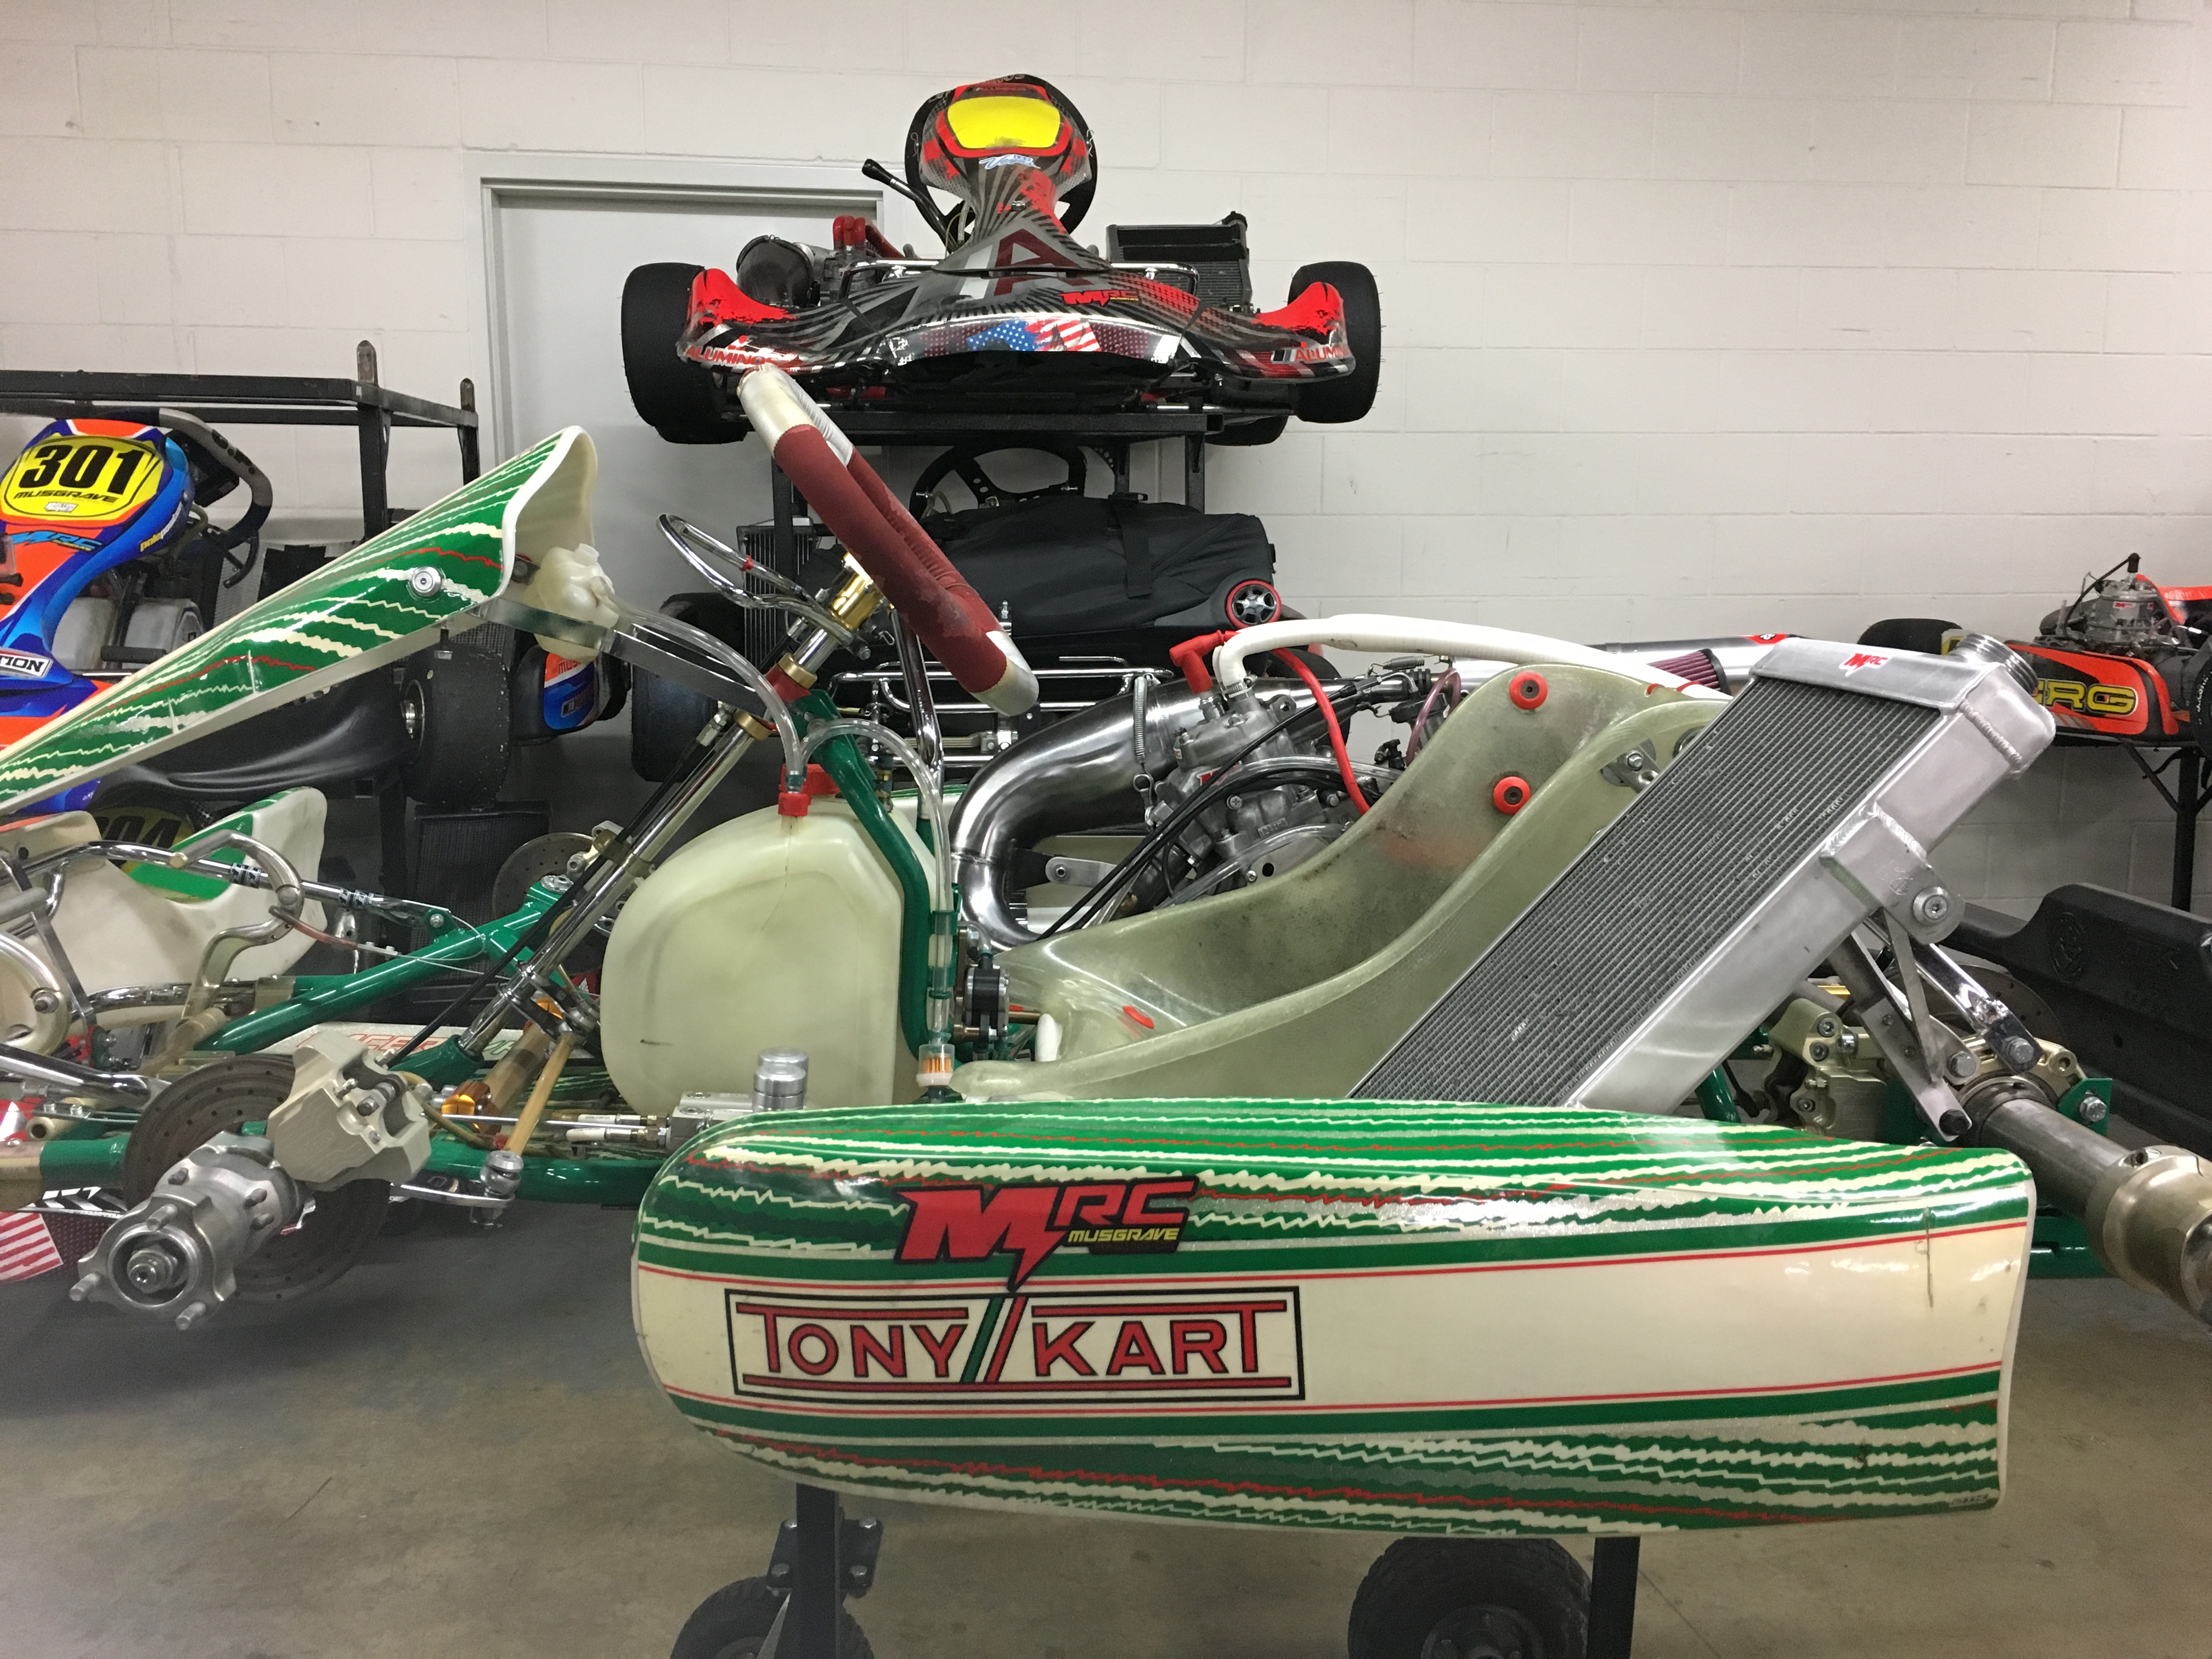 2014 TONY KART SHIFTER W/ COMPLETE HONDA CR125 ENGINE PACKAGE